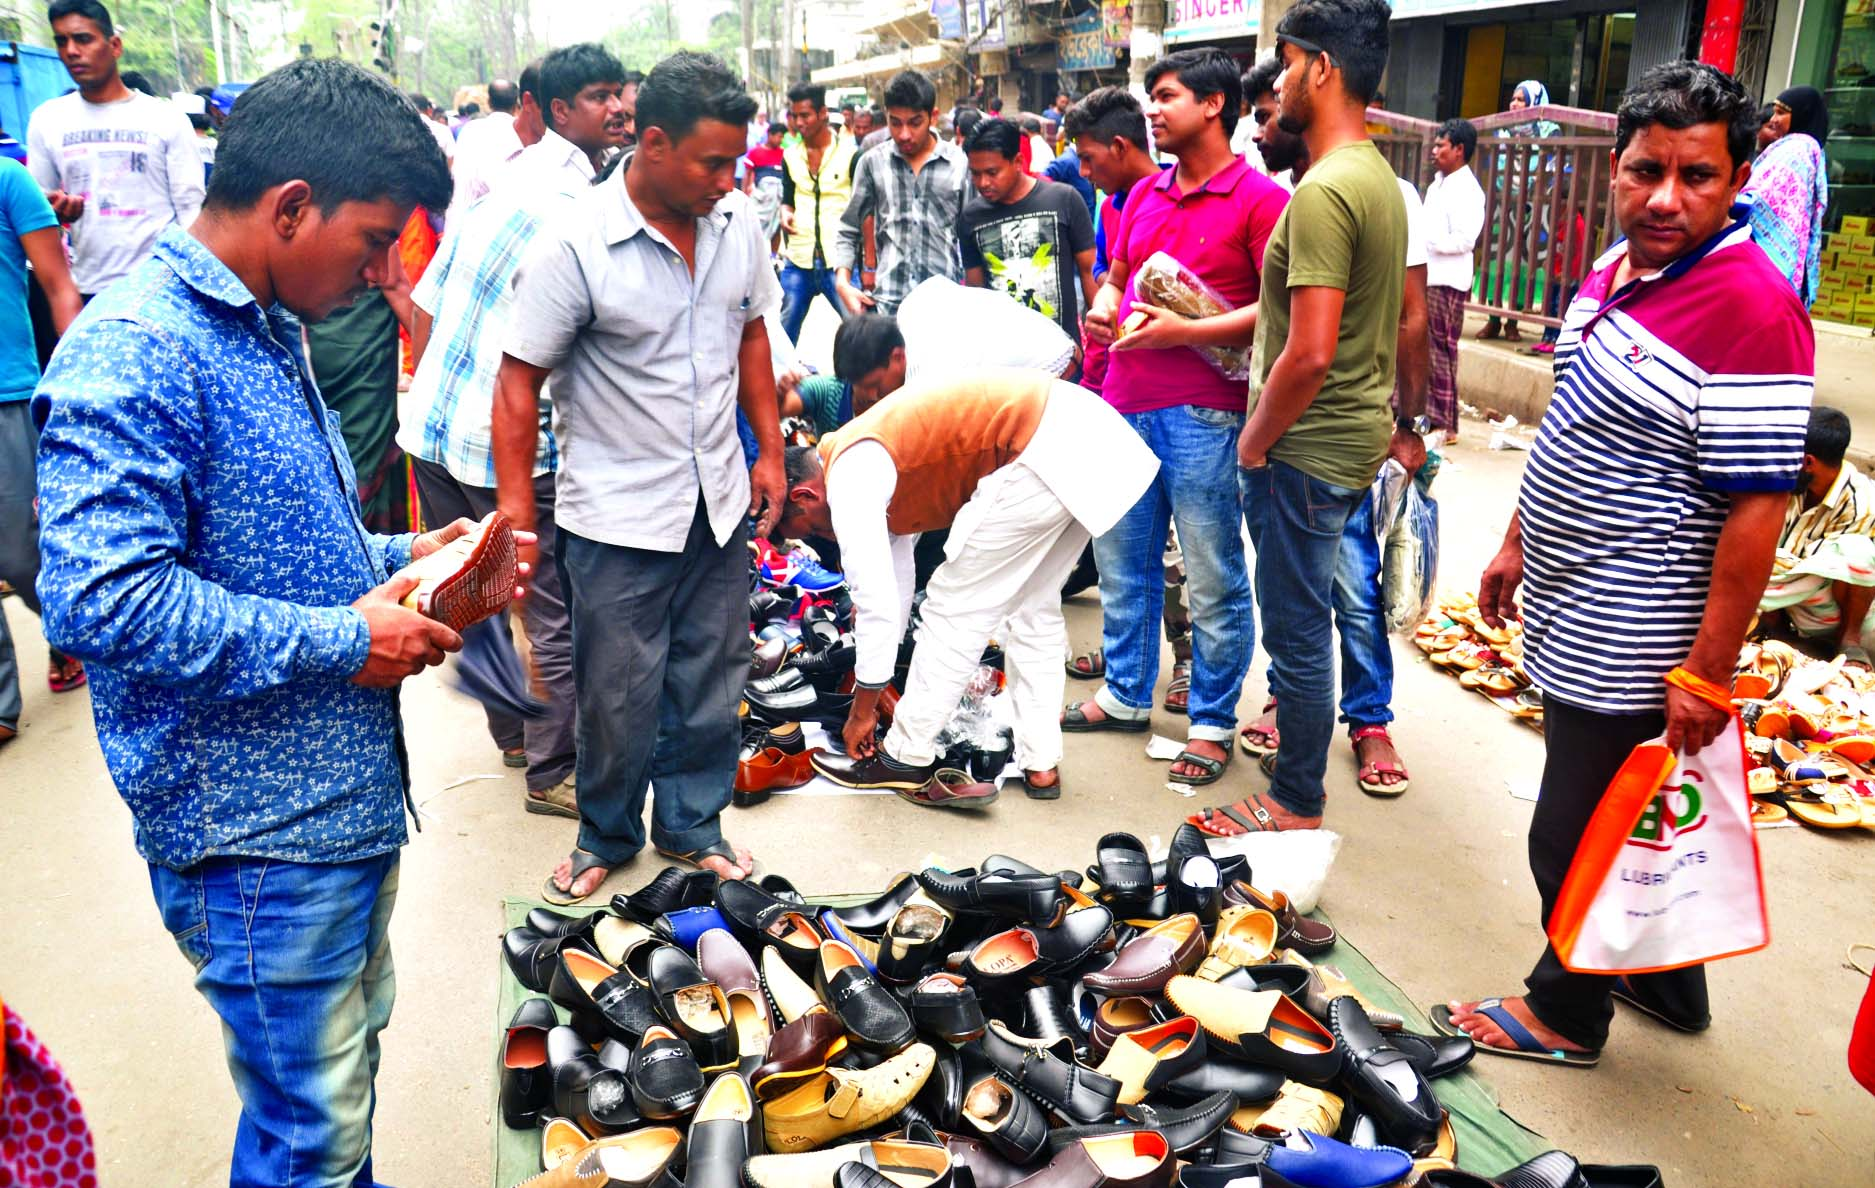 Hawkers occupied the streets in Gulistan area during office time defying Dhaka South City Corporation order. This photo was taken on Thursday.